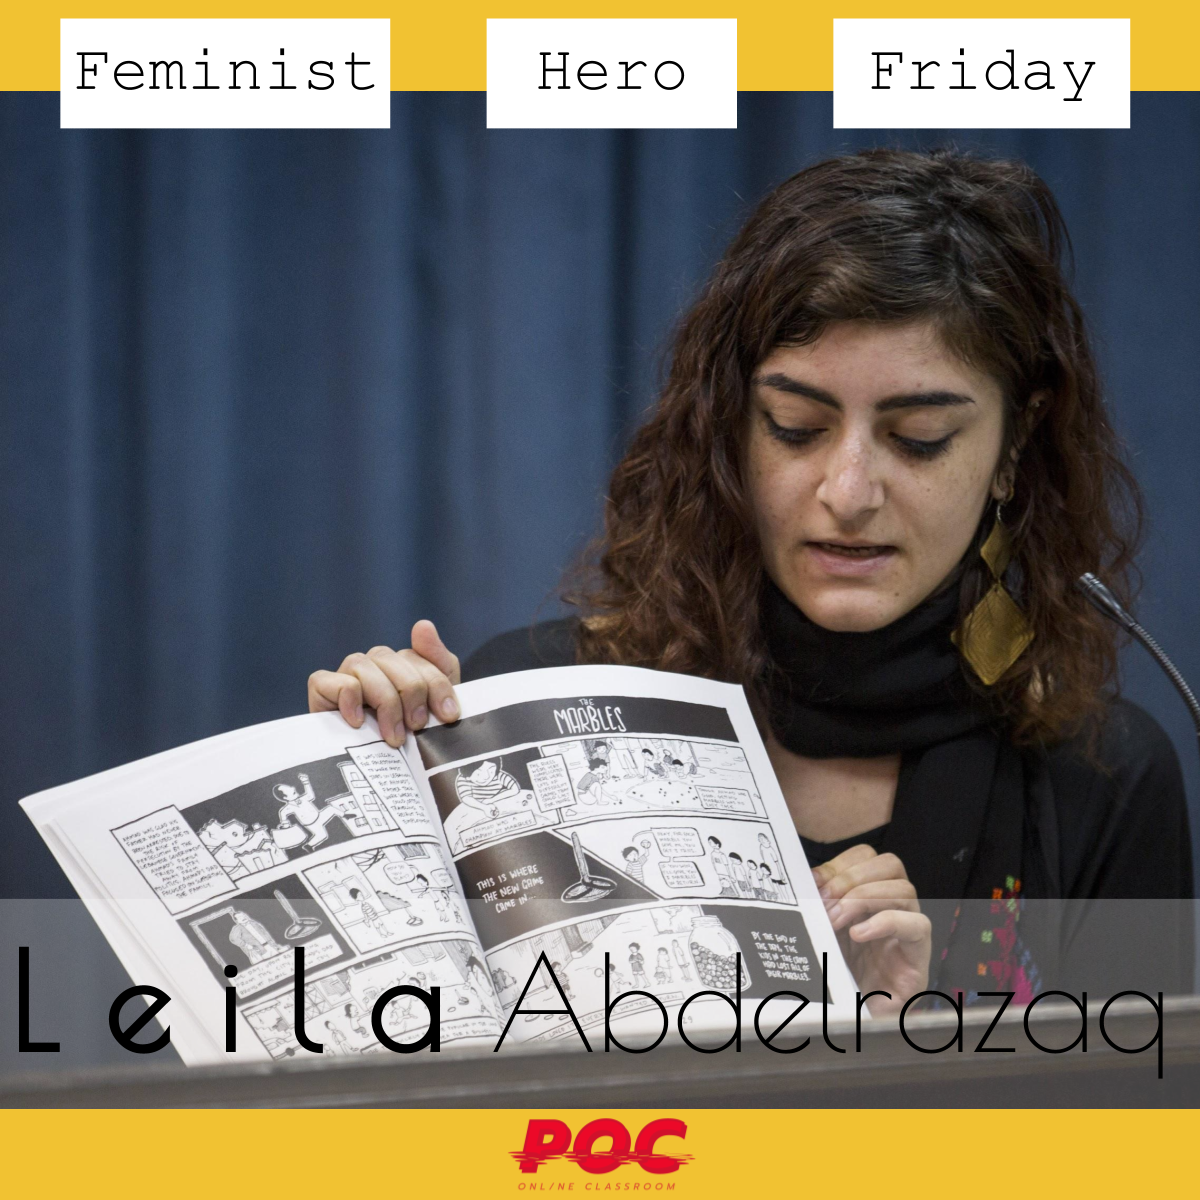 """Image is Leila holding a copy of her graphic novel, which she is showing ton an audience. At the top of the image it reads """"Feminist Hero Friday"""" and at the bottom, in a larger font size, it reads """"Leila Abdelrazaq."""" The red POC logo is at the bottom and the image background is mustard yellow."""